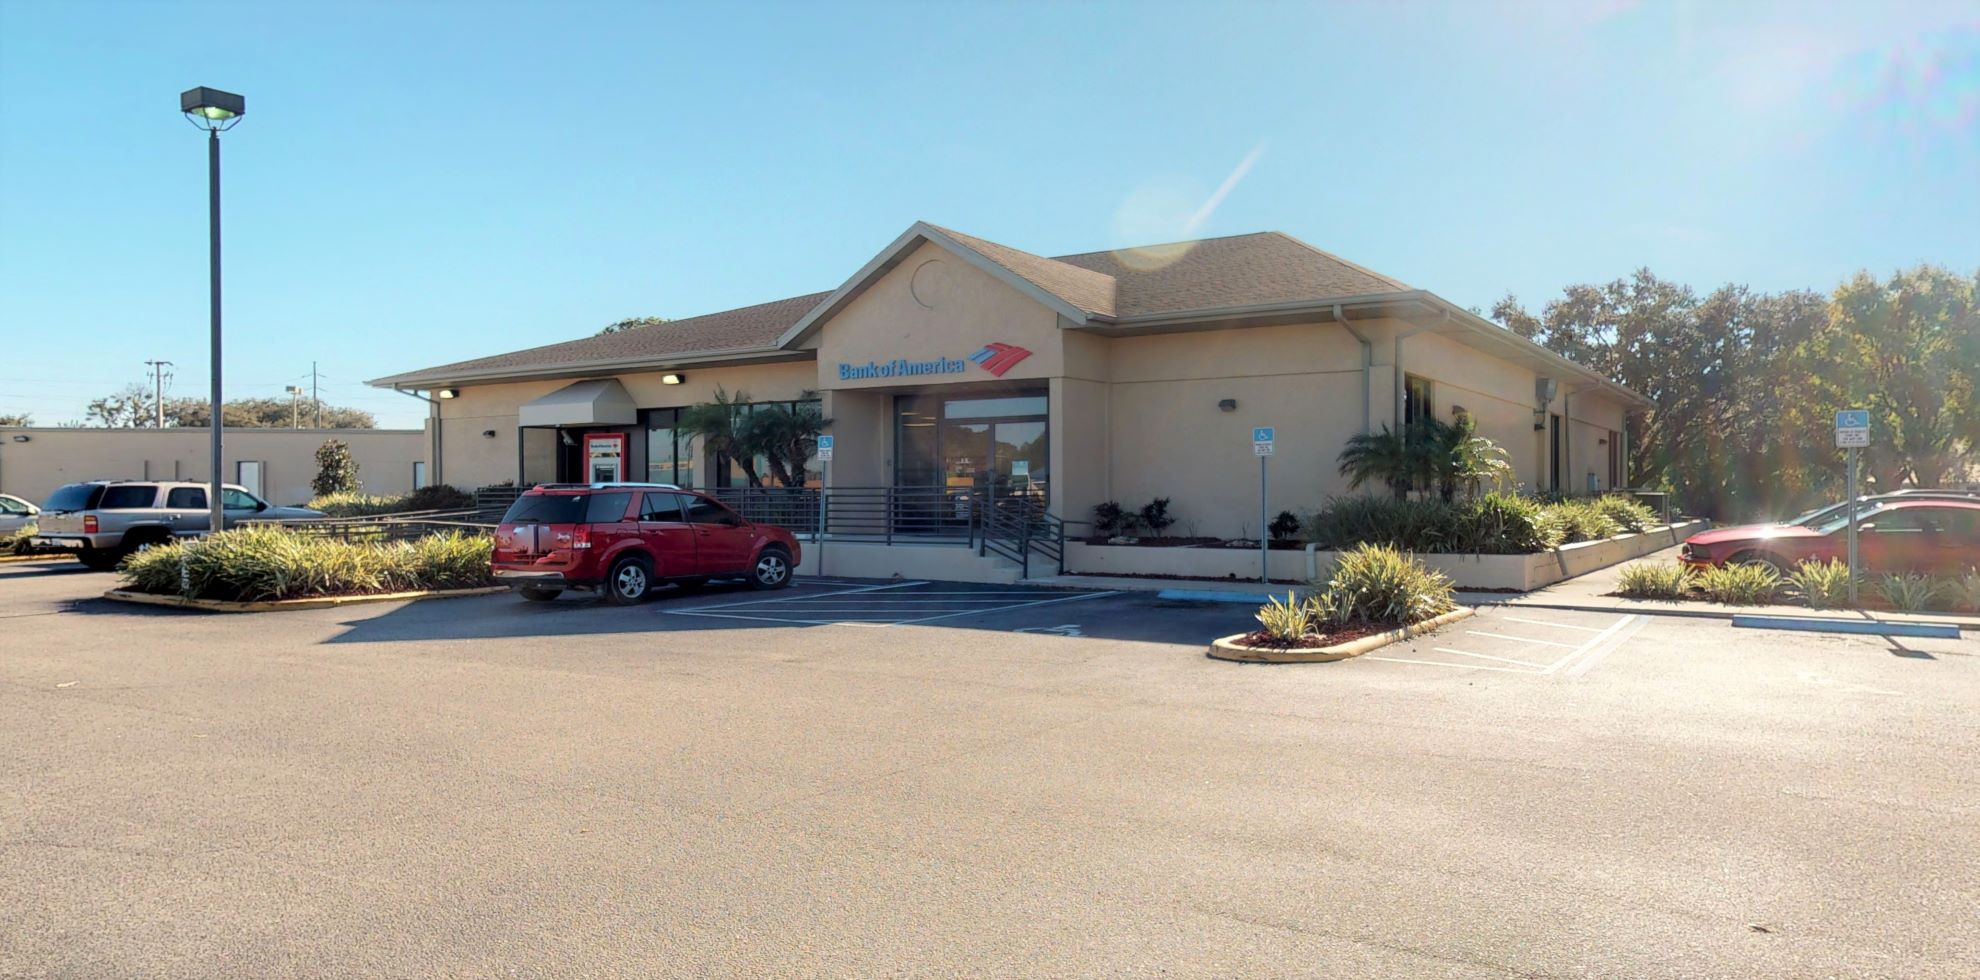 Bank of America financial center with drive-thru ATM   300 Havendale Blvd, Auburndale, FL 33823